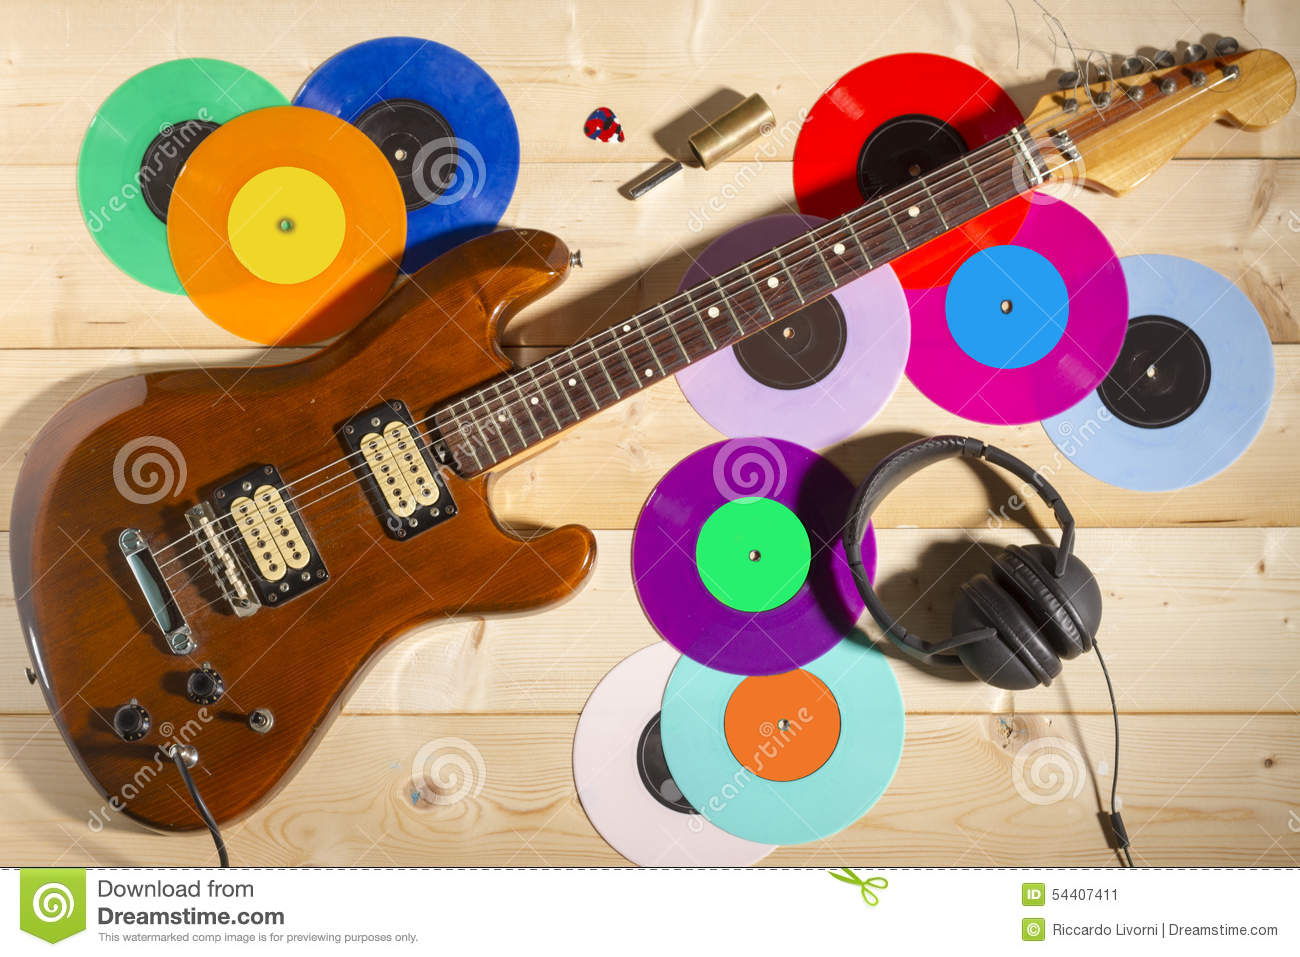 electric guitar 33 and 45 vinyl records and headphones stock image image of overhead. Black Bedroom Furniture Sets. Home Design Ideas